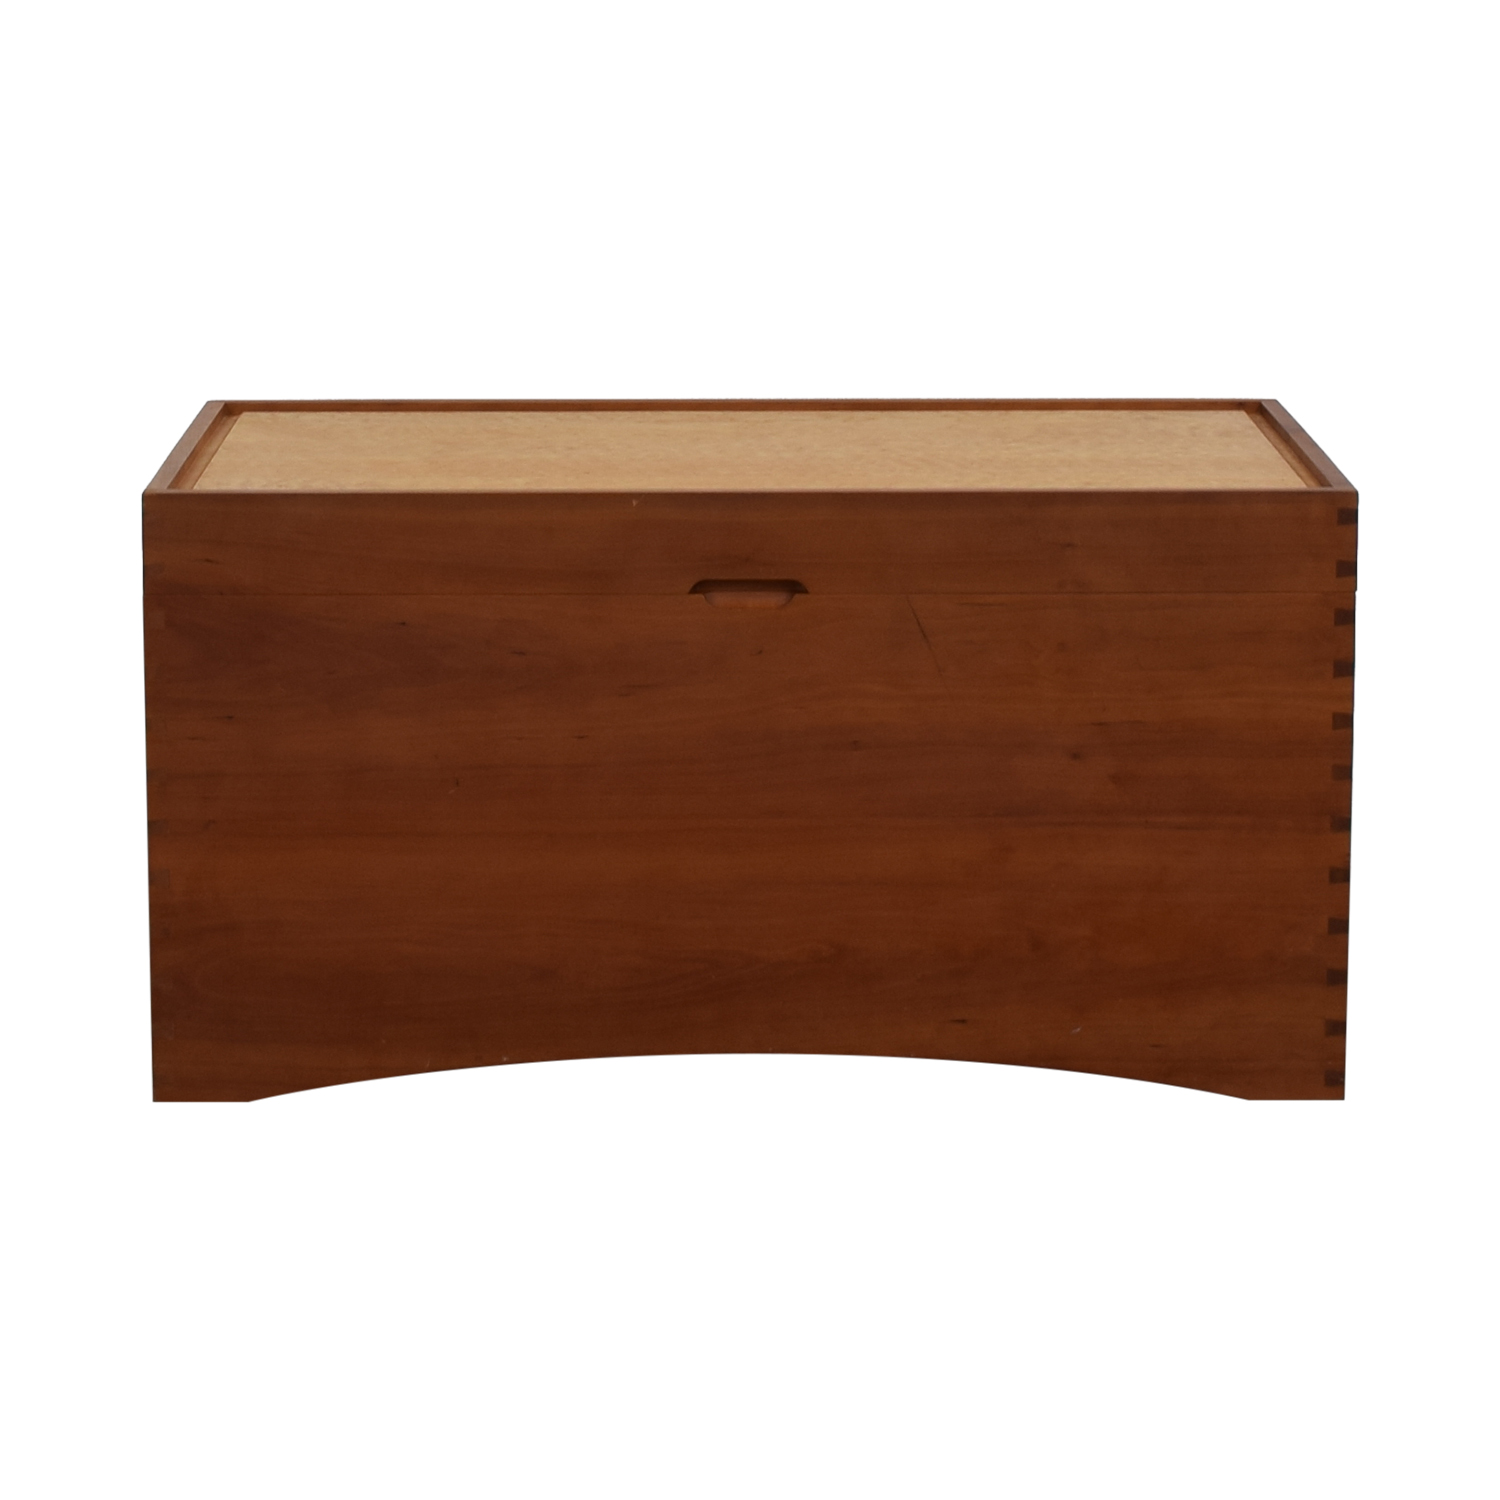 The Joinery Custom Wood Hope Chest Trunk / Storage